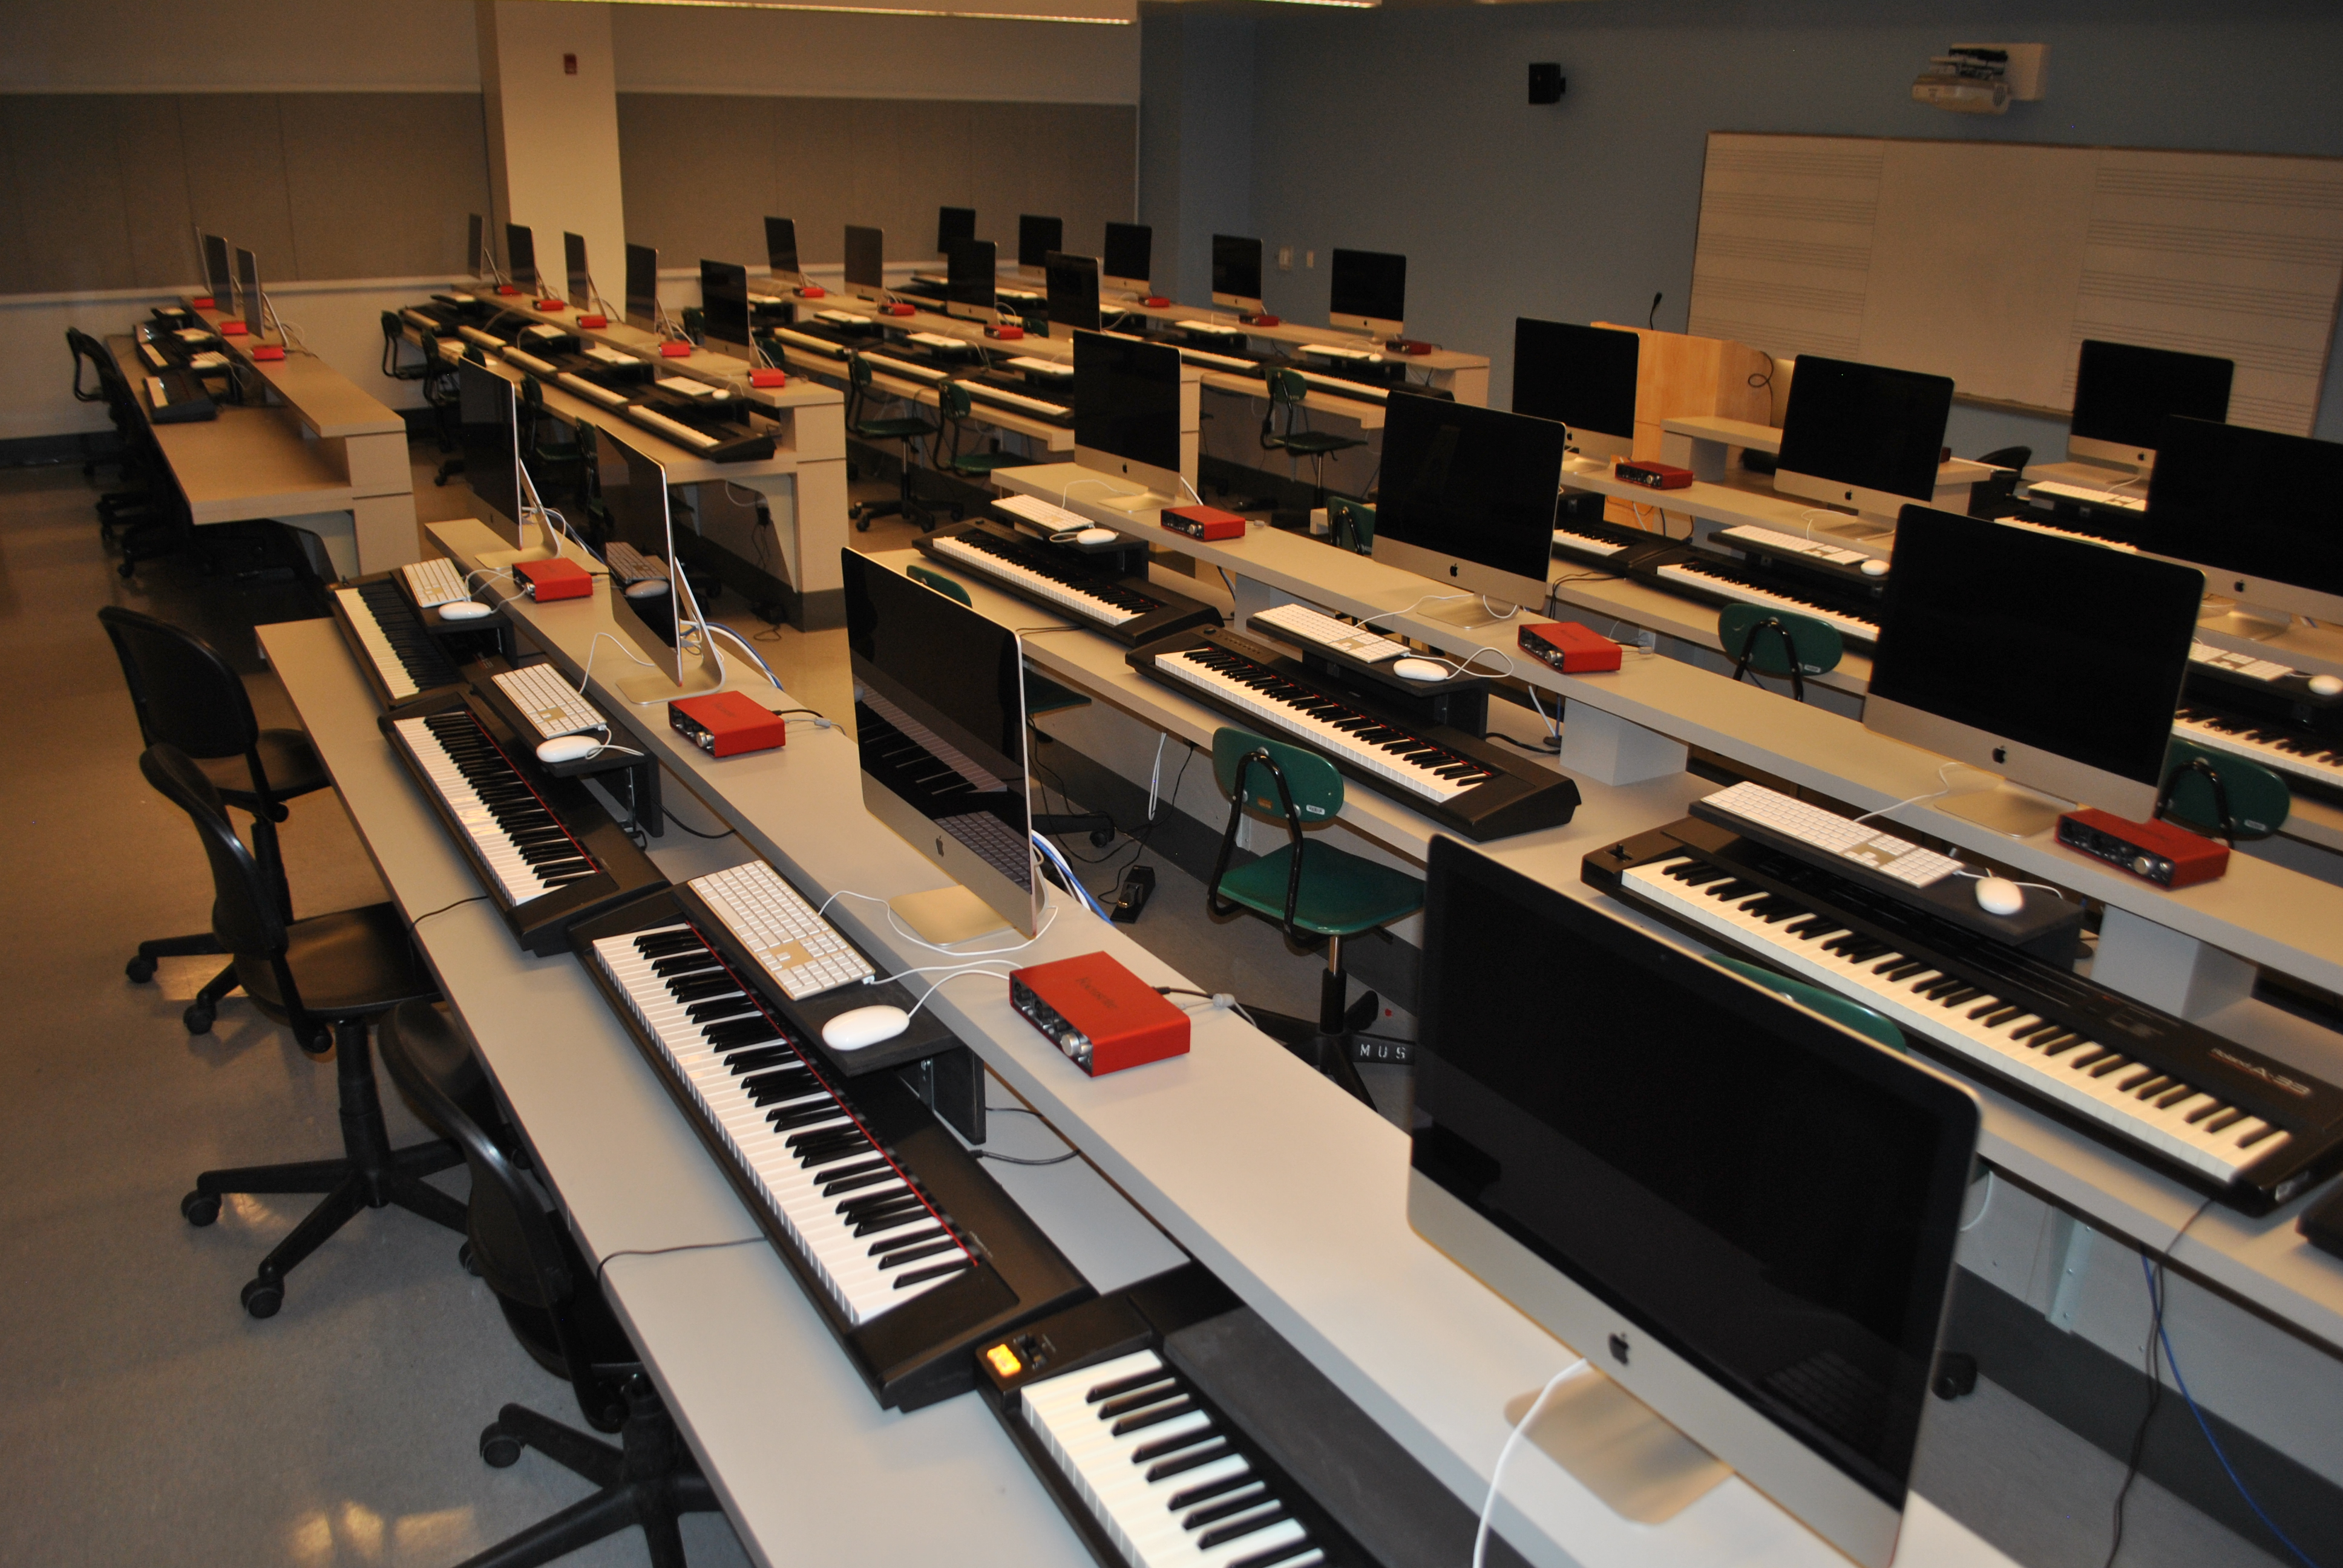 Several rows of stations equipped with MIDI keyboards, audio interfaces, and iMac computers, with a white board in front of the room.